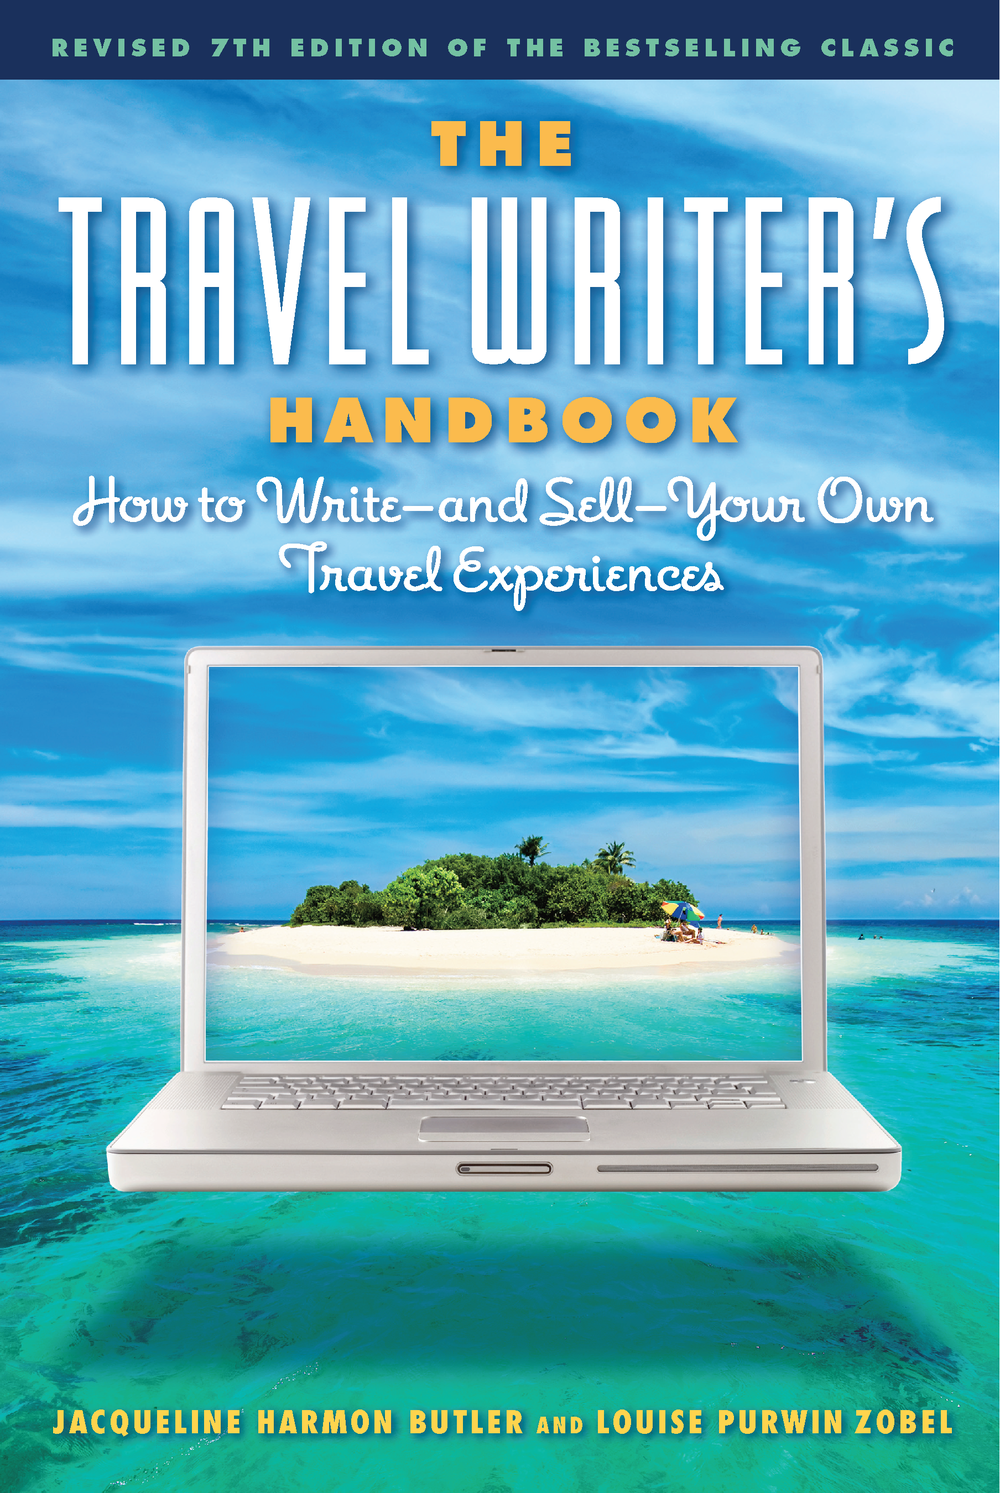 Travel Writer's Handbook_Page_01.png